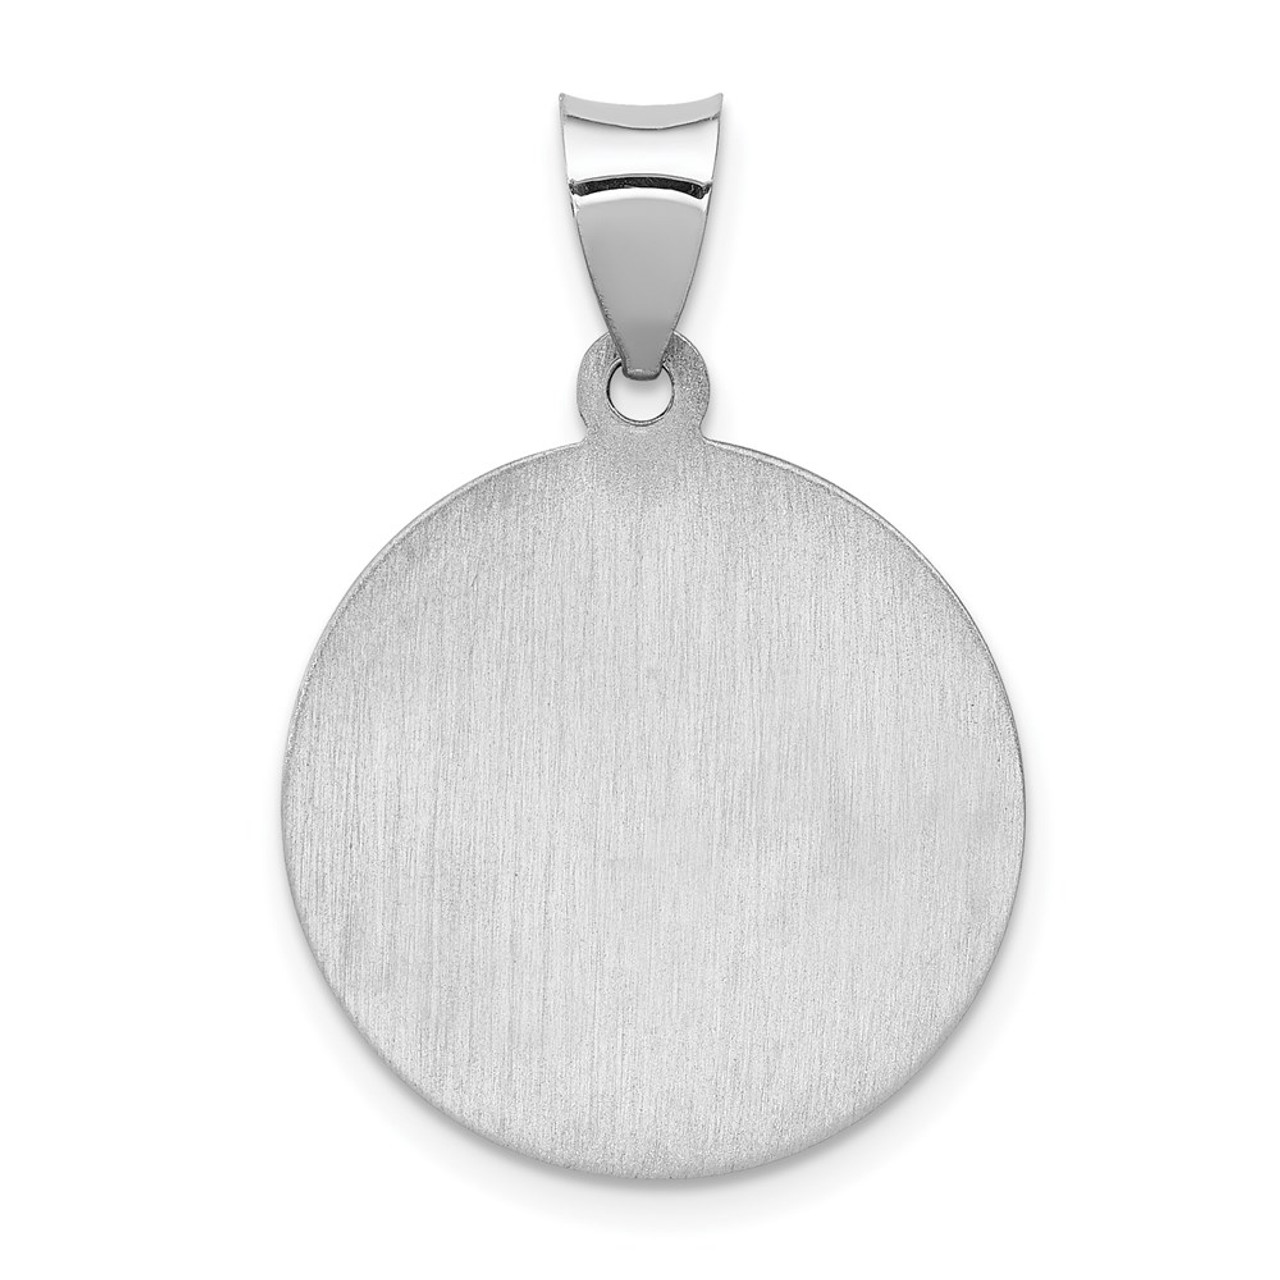 Anthony Medal Pendant 19mm width 14K White Gold Polished and Satin St